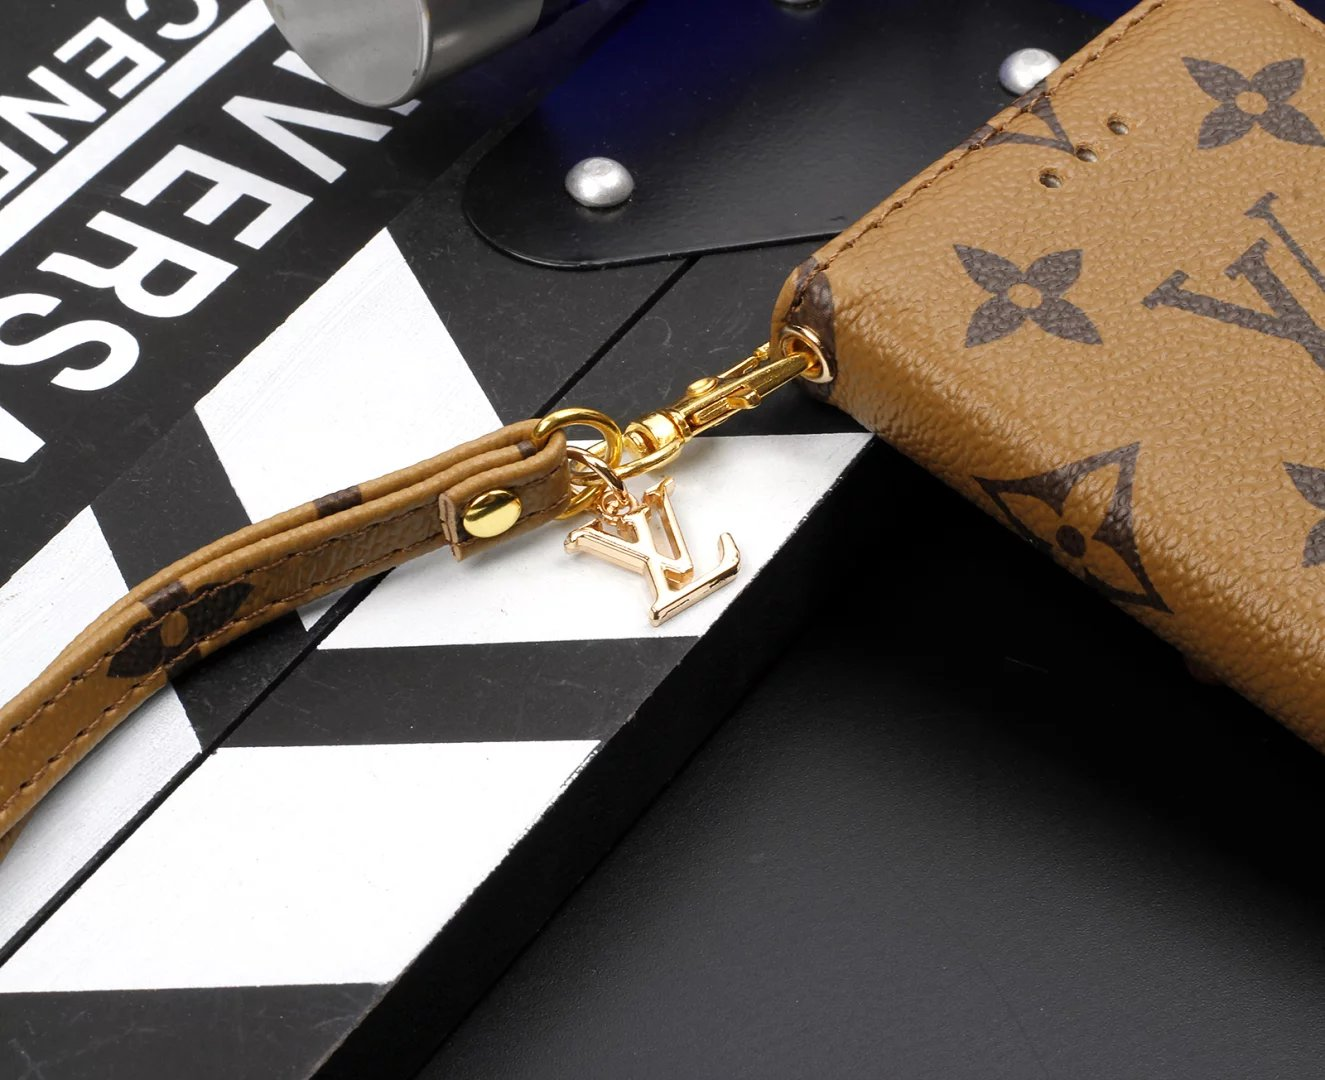 iphone hülle leder designer iphone hüllen Louis Vuitton iphone6s plus hülle iphone ca6s E 6slbst gestalten wann kommt neues iphone raus iphone 6s Plus hülle designer iphone 6s Plus hülle gold iphone cover gestalten iphone silikonhülle